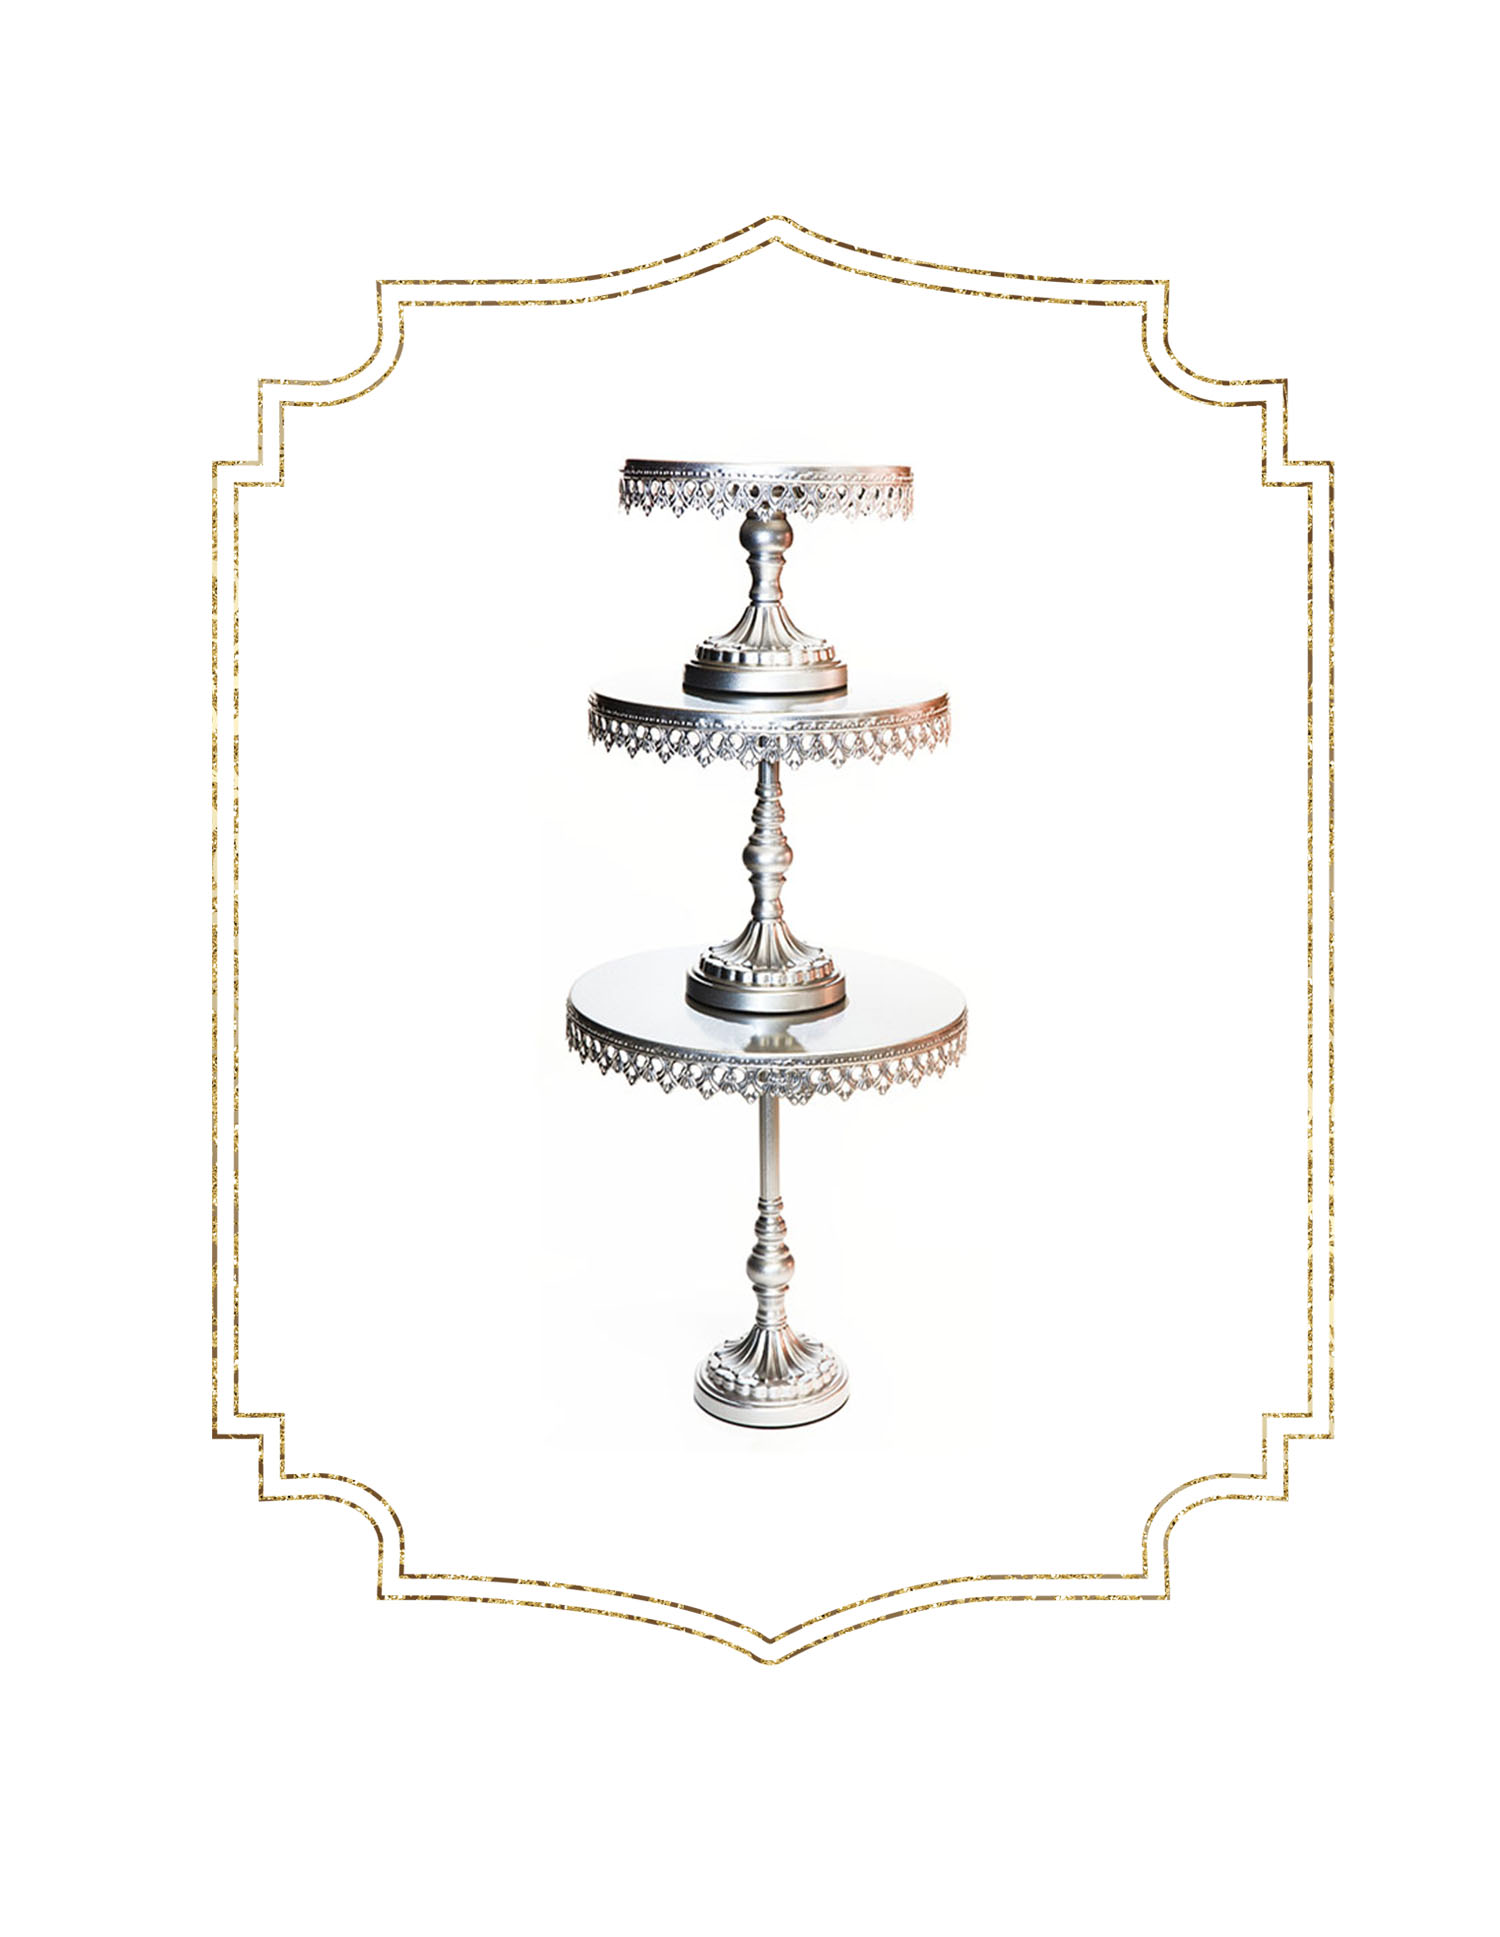 SHOP-preview round cake stand antique silver no crytals.jpg